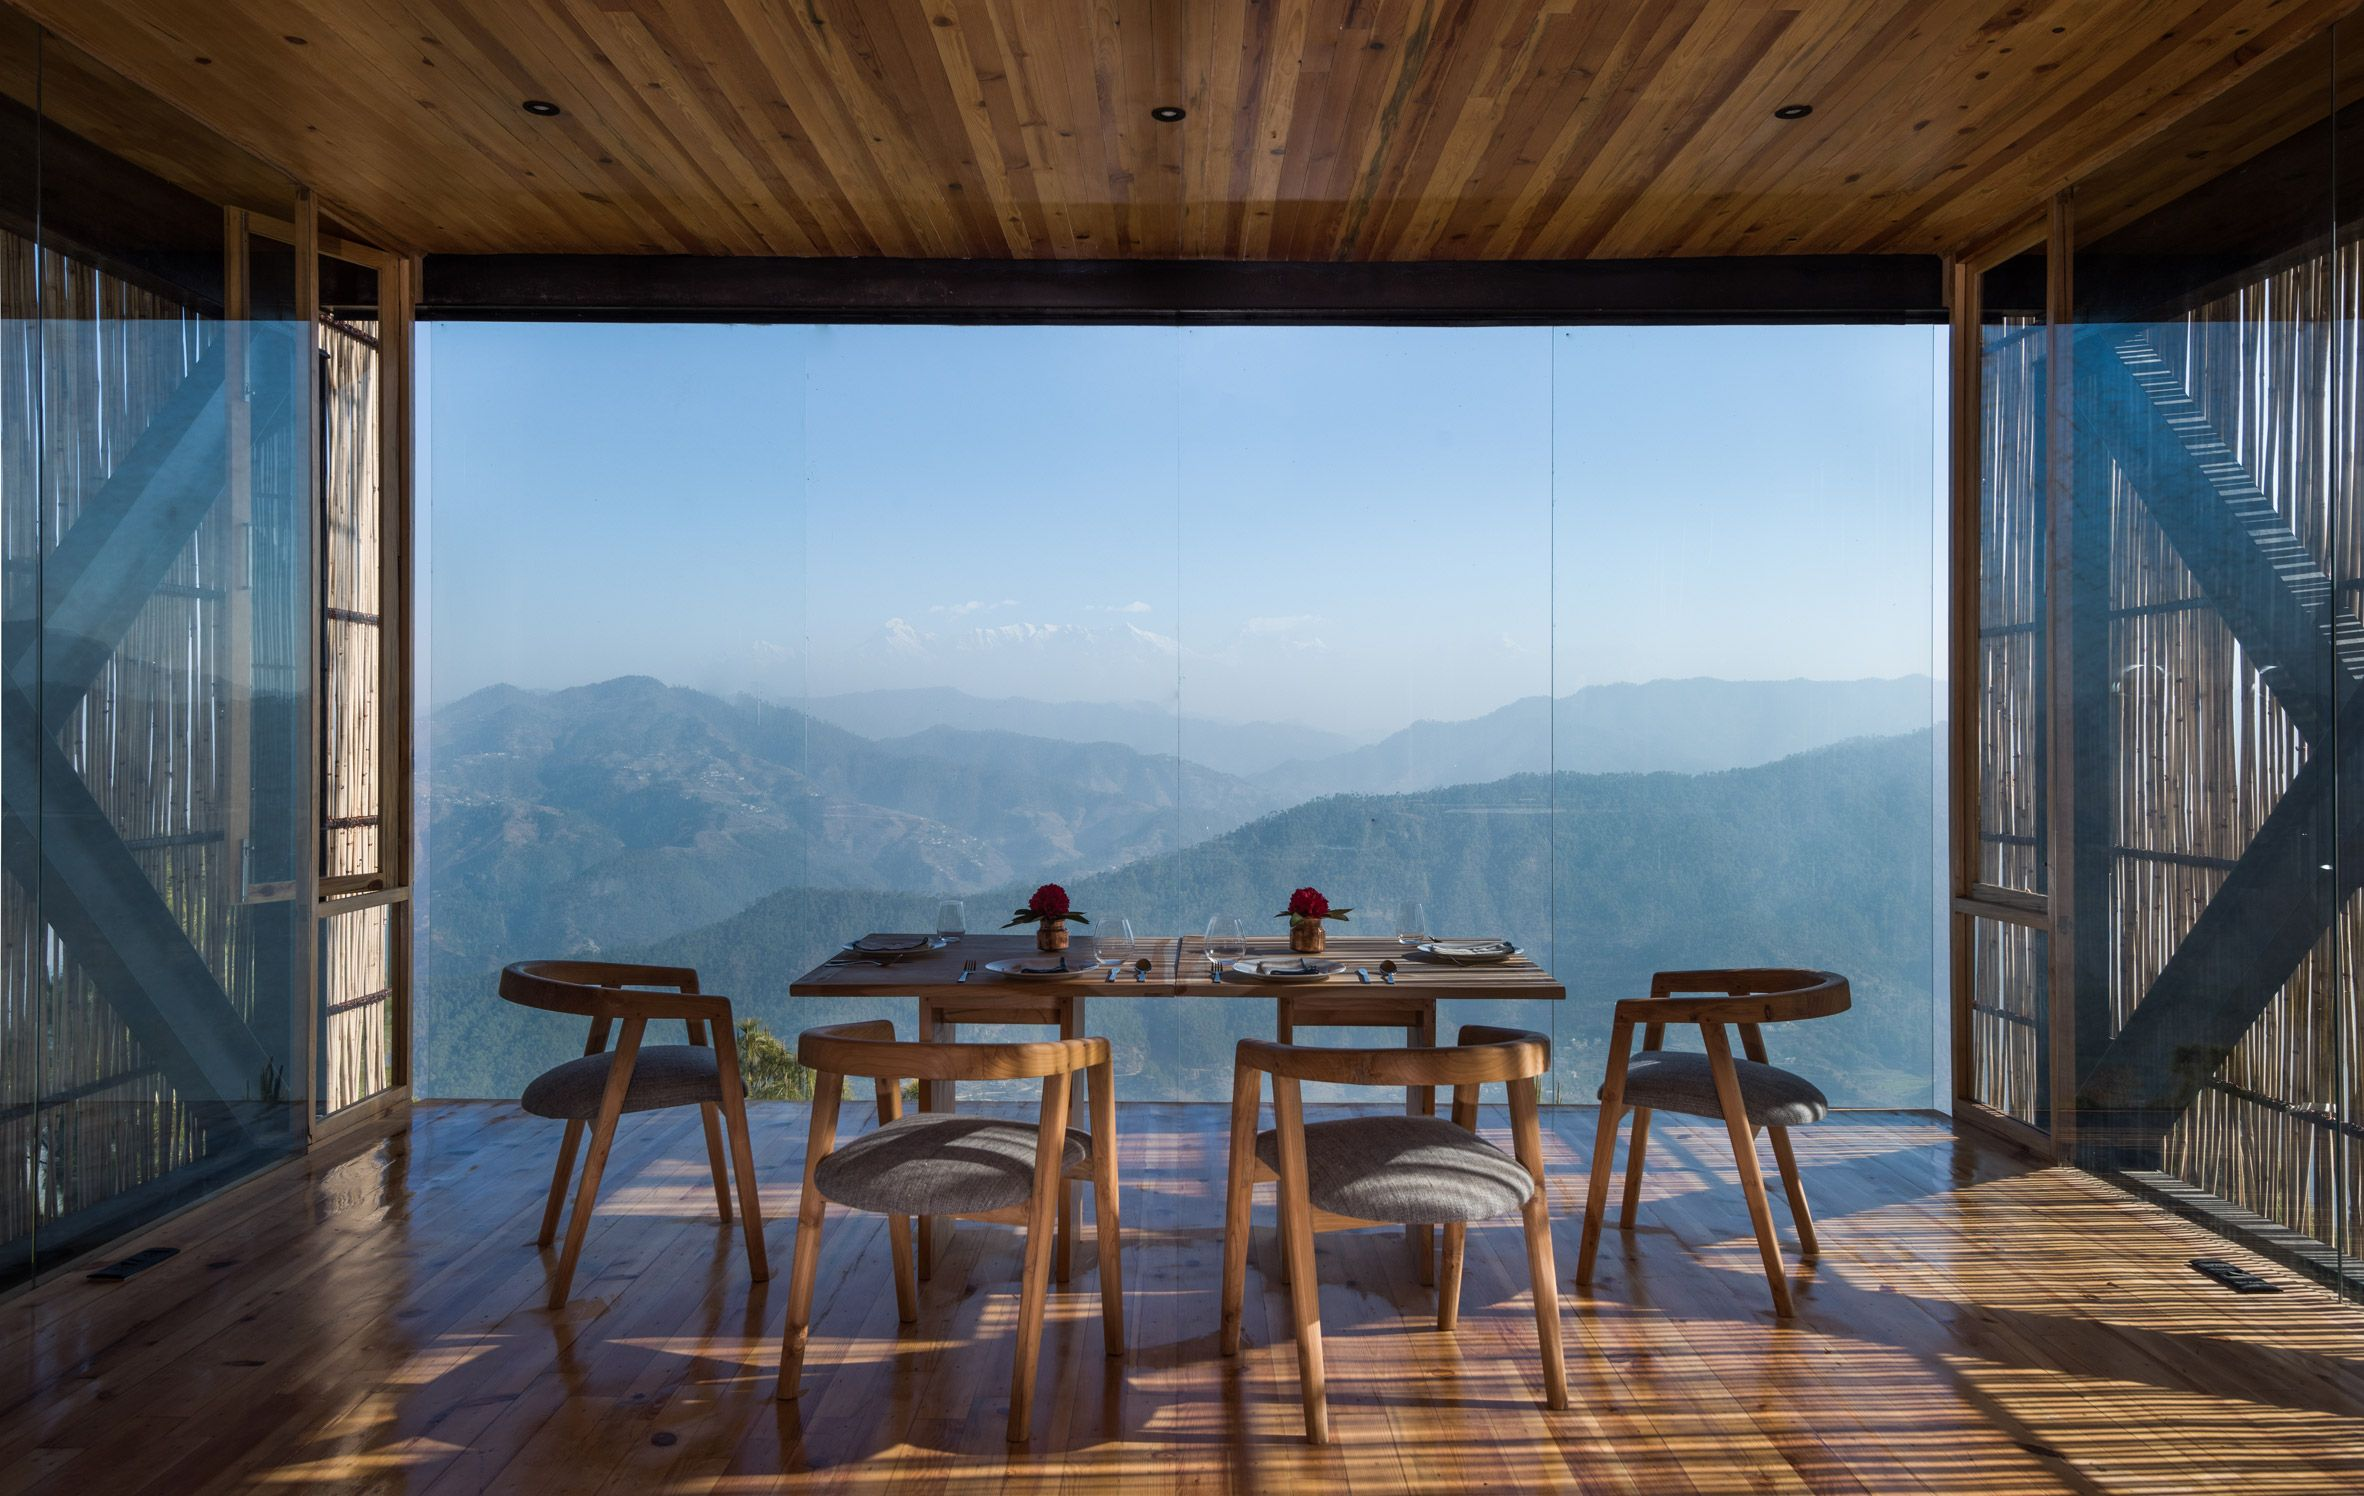 Kumaon Hotel Zowa Architecture Hotels India Mountains Dezeen 2364 Col 3